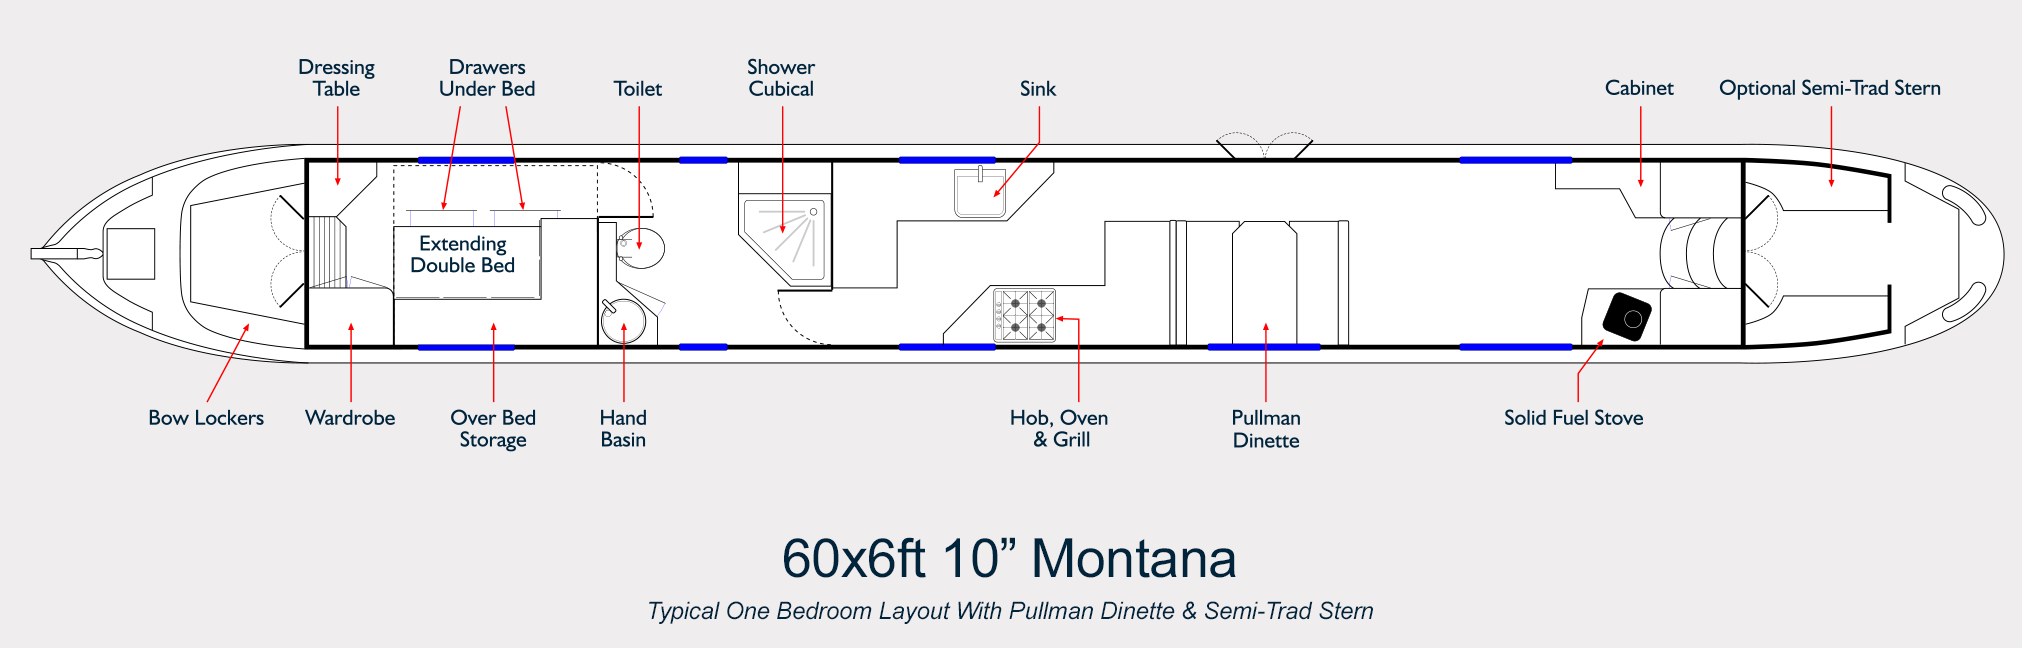 Aqualine Narrowboat Builders Layout Drawing Montana